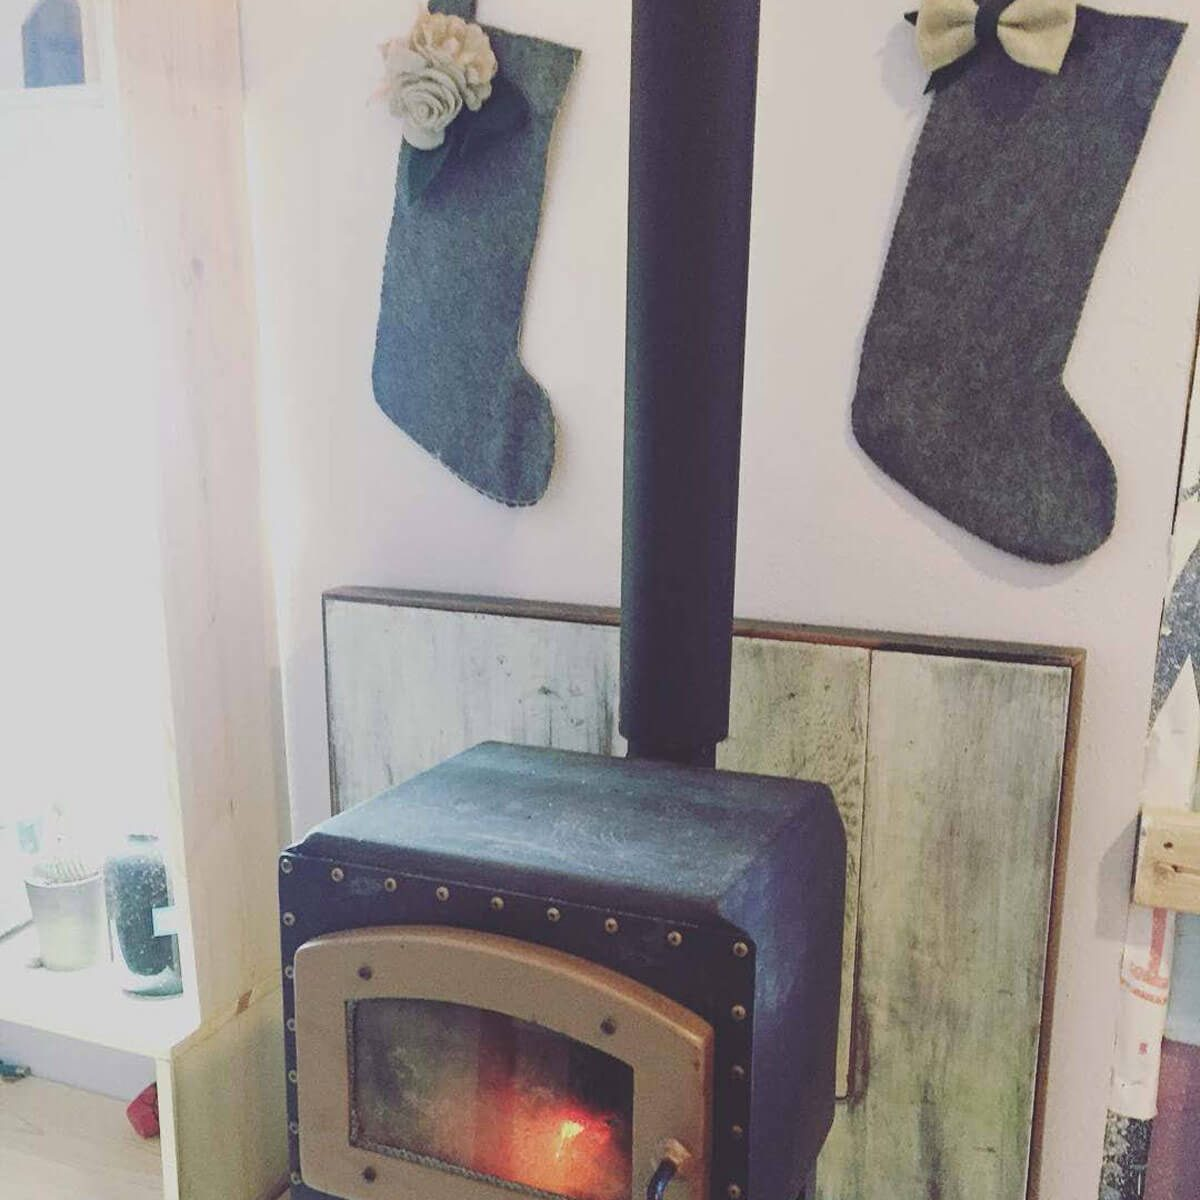 Stockings Hanging over the Fireplace